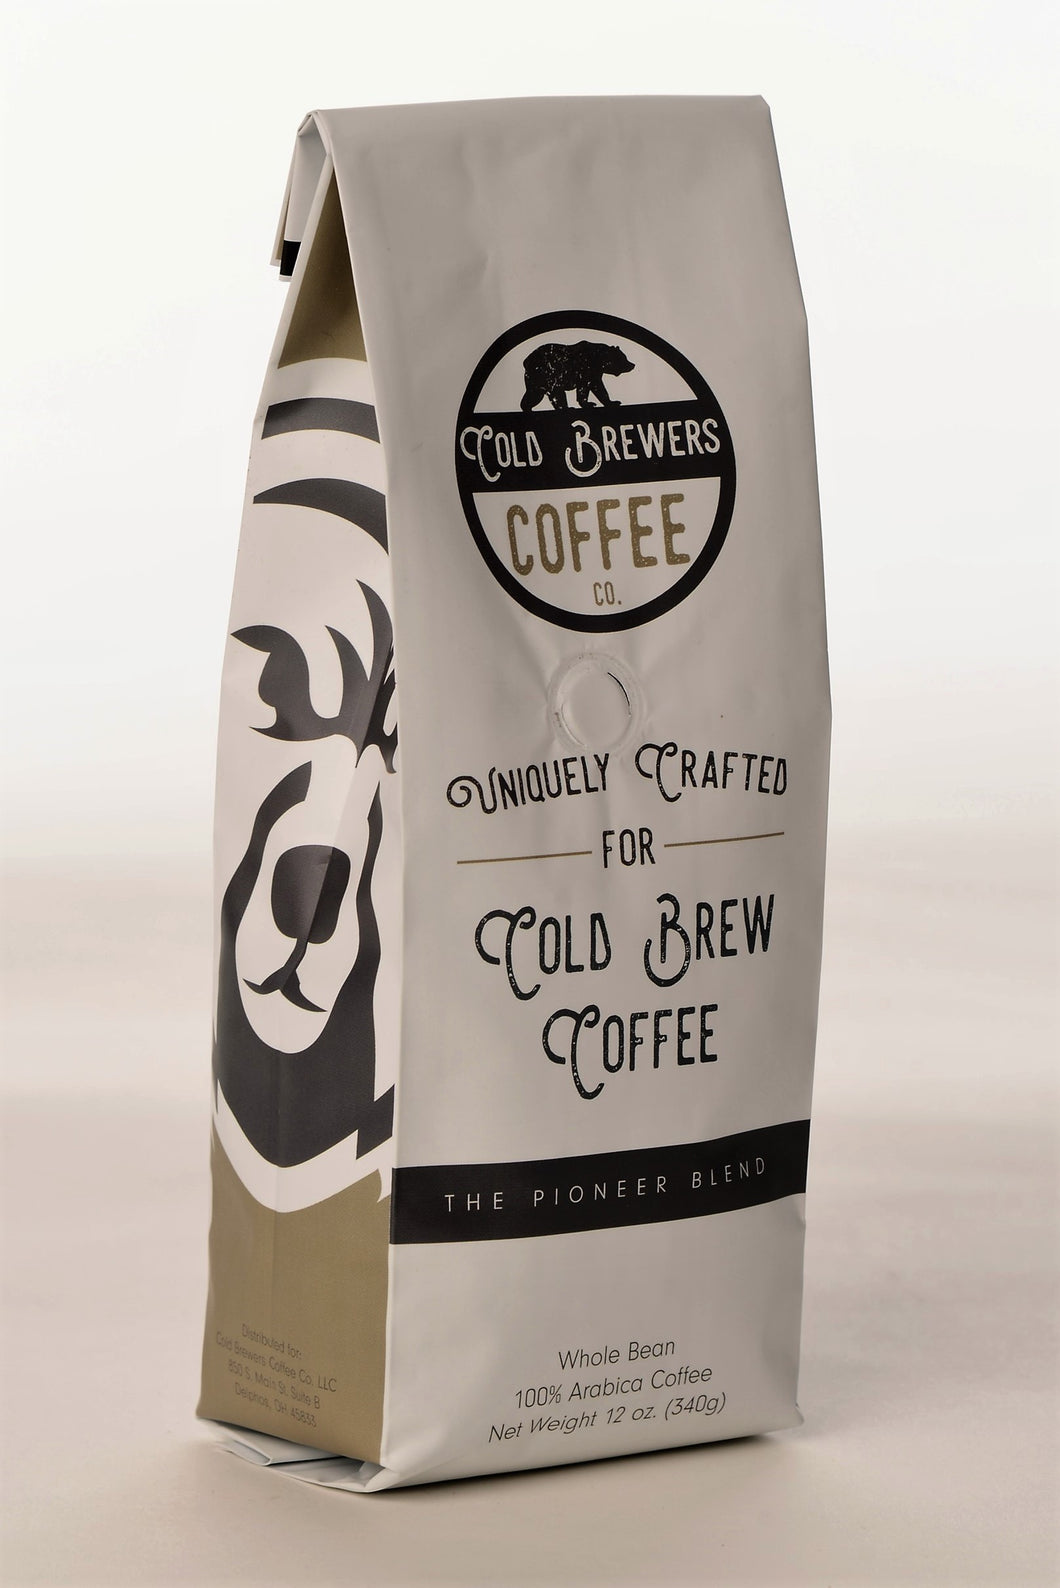 [Pioneer Blend] - Cold Brew Coffee Beans Cold Brewers Coffee Co